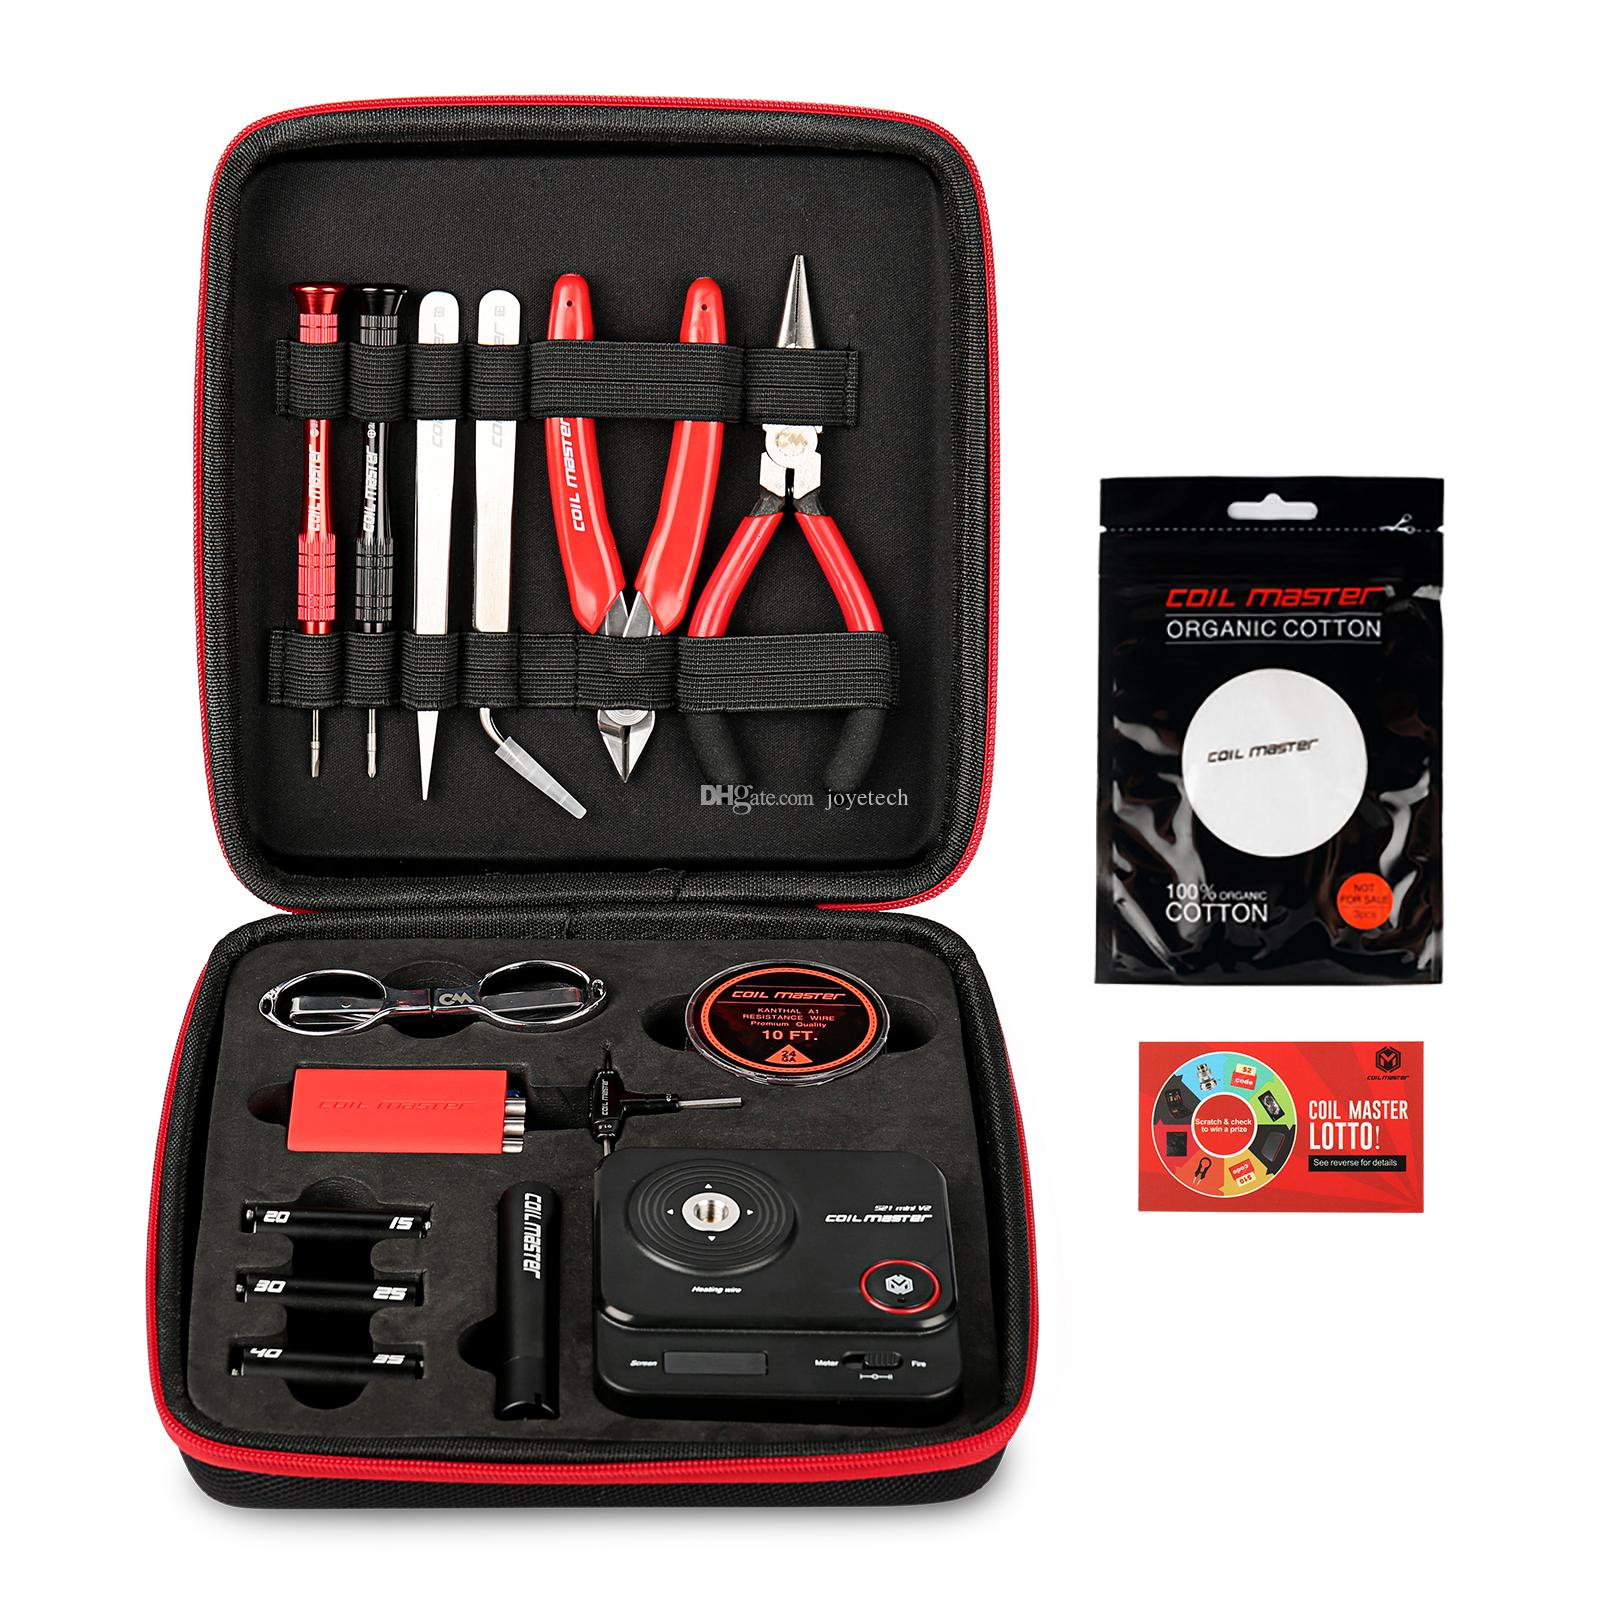 100% Original Coil Master DIY KIT V3 2018NEWEST con 521 Mini Tab 2.0 Coiling Kit V4 Pinzas de cerámica Wire Cutter - All CoilMaster Instock